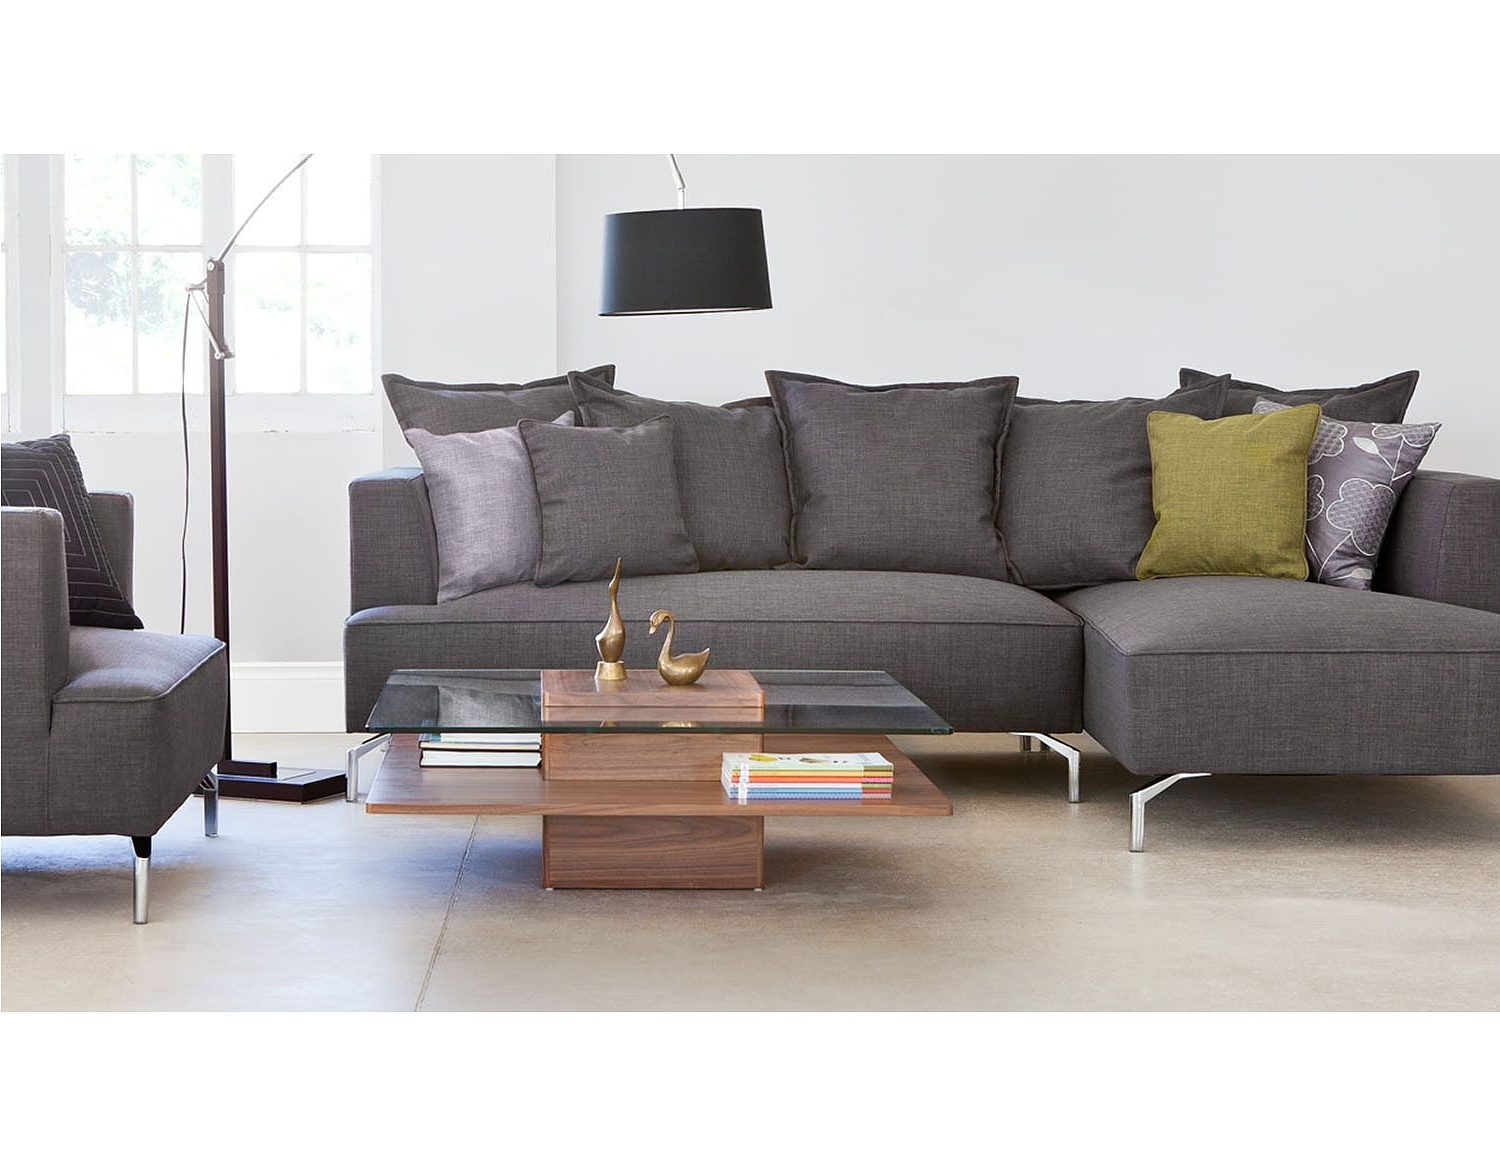 Structube Sectional Sofas Inside Well Liked Structube – Lighting : Floor Lamps : Curva (dark Brown) (View 13 of 20)